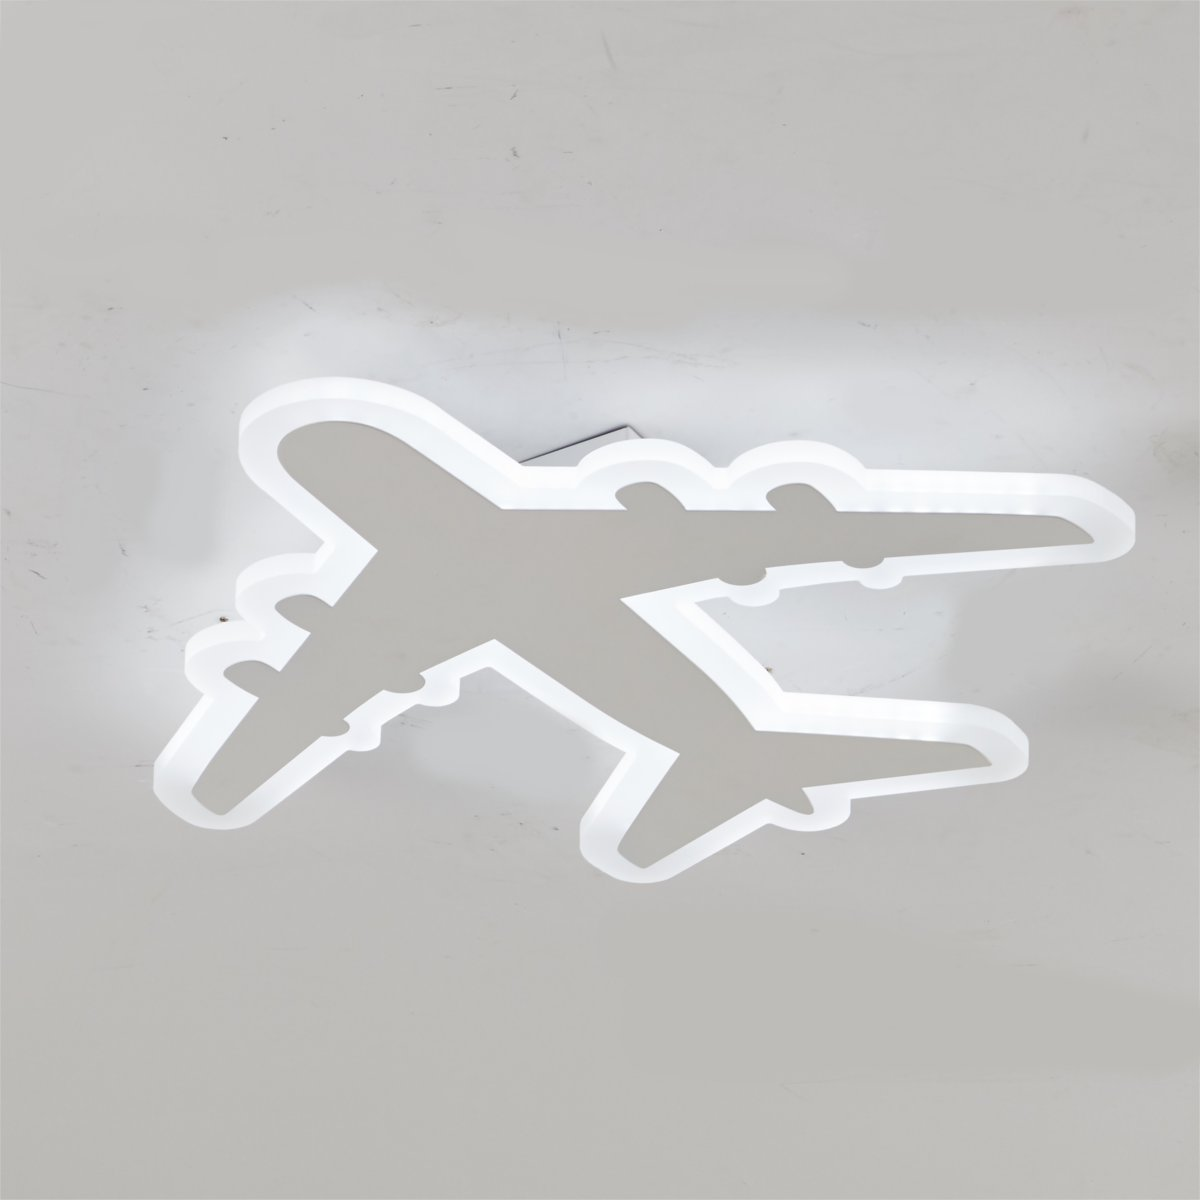 Acrylic Aircraft LED Ceiling Light Lamp Best Children's Lighting & Home Decor Online Store